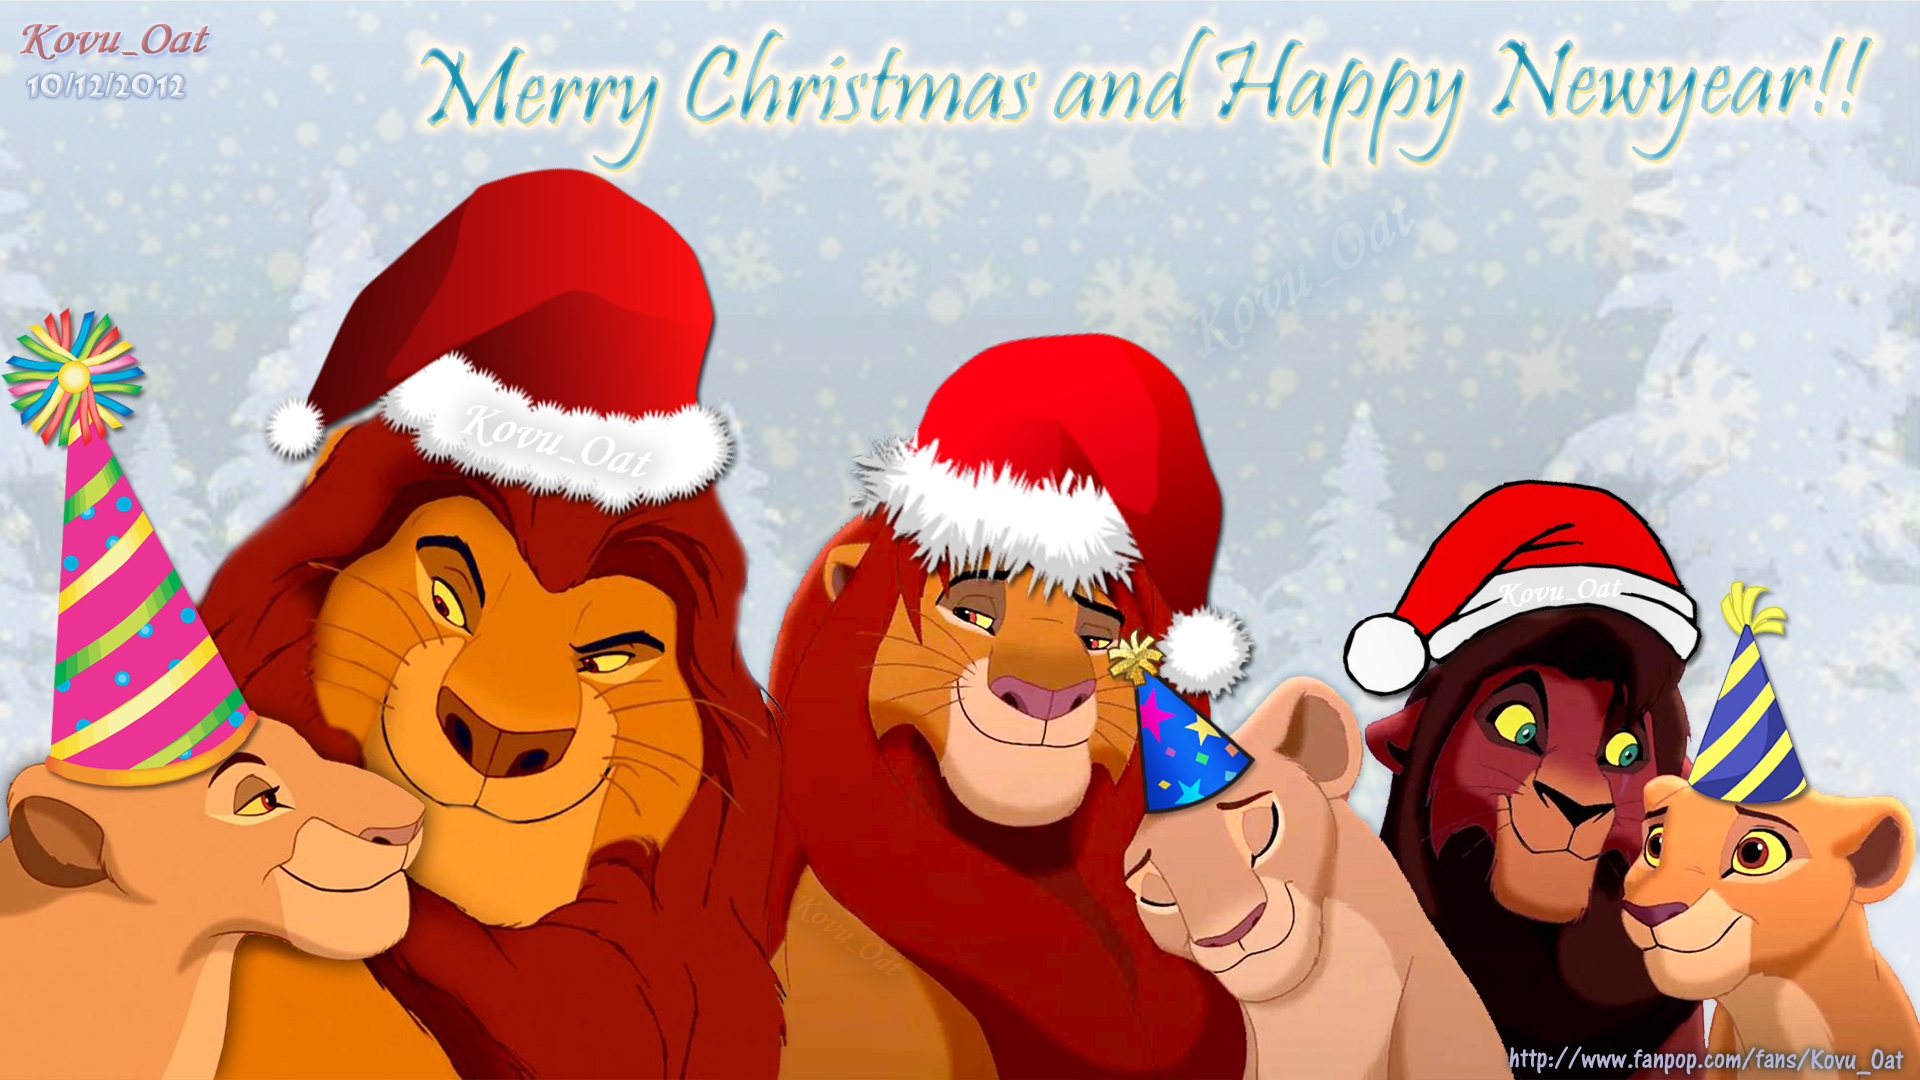 http://images6.fanpop.com/image/photos/33000000/Mufasa-Sarabi-Simba-Nala-Kovu-Kiara-Merry-Christmas-Happy-New-Year-HD-lion-king-couples-33063382-1920-1080.jpg